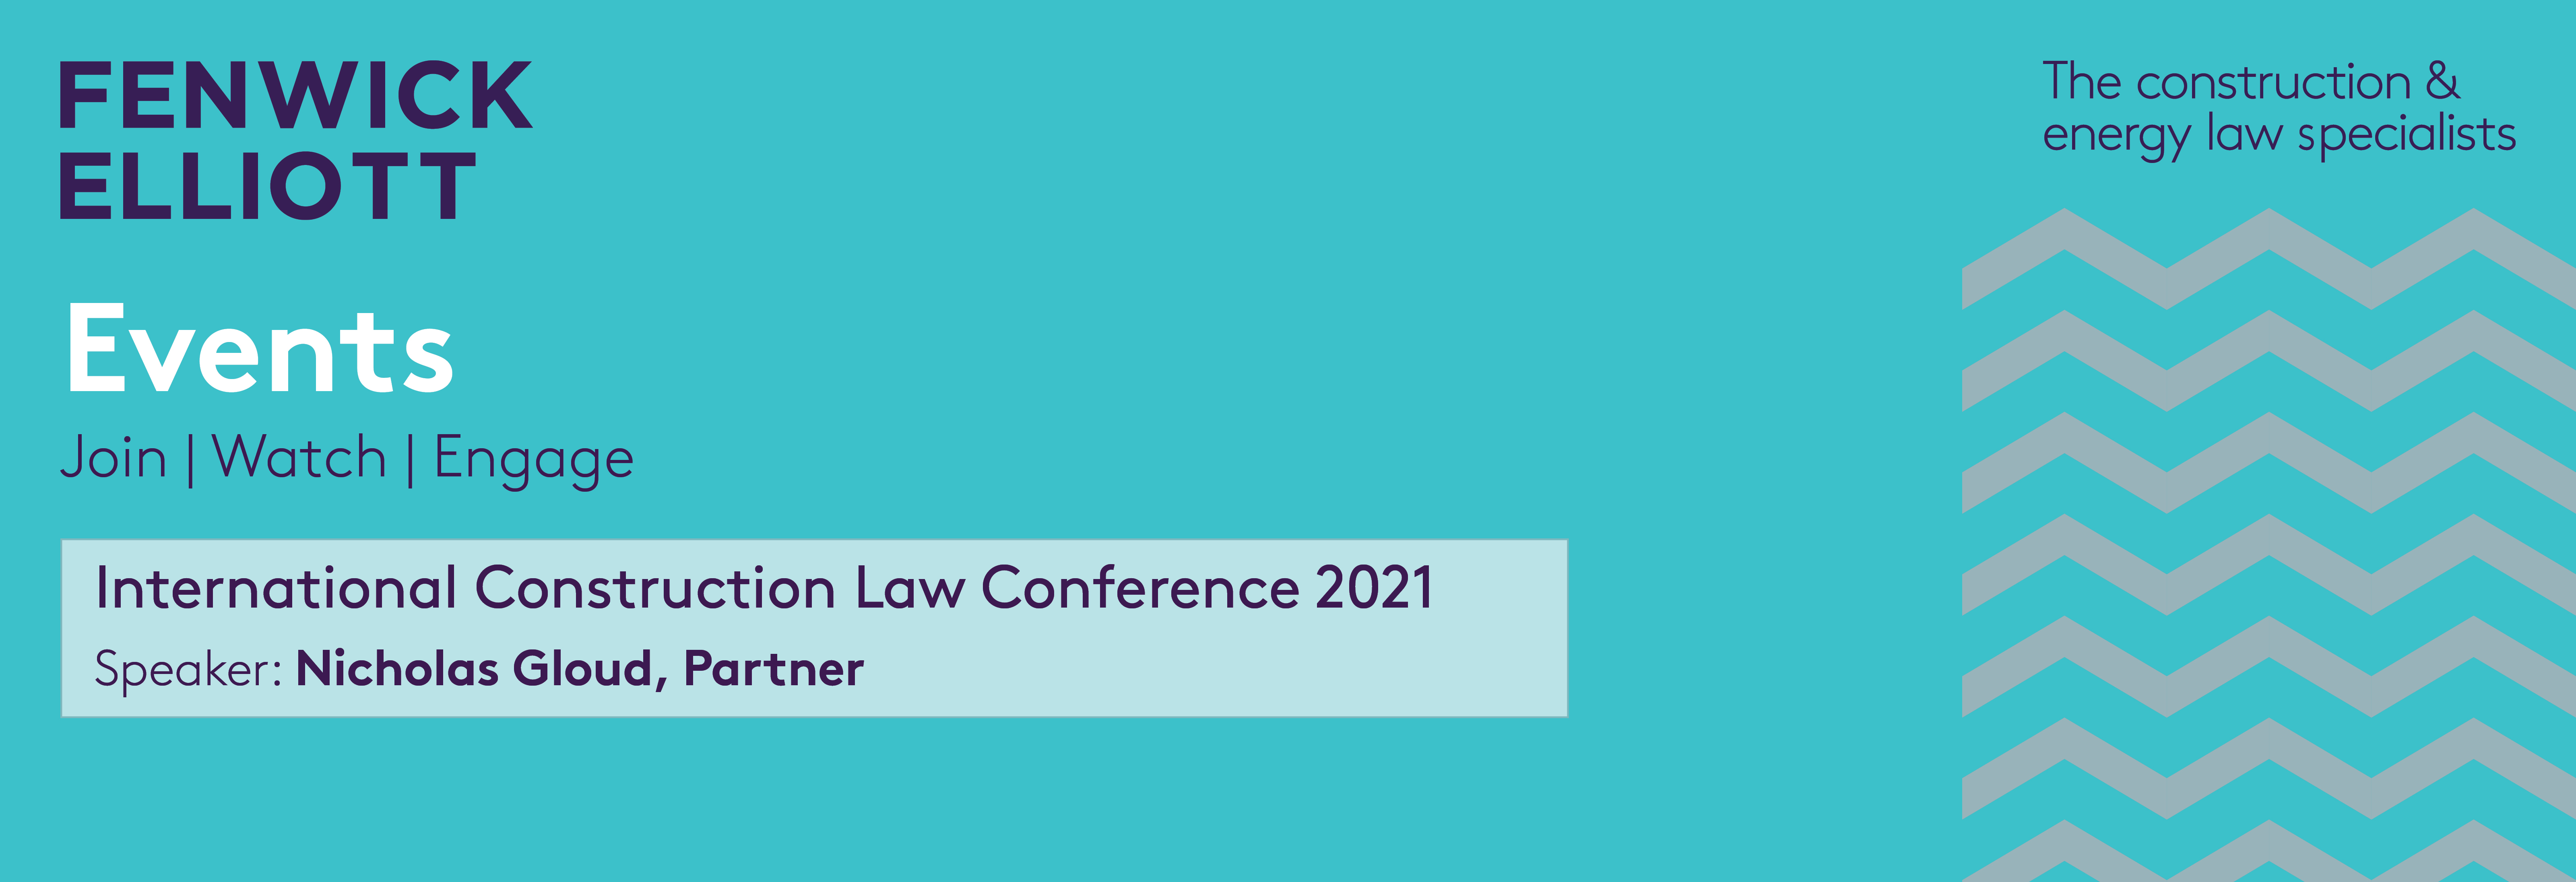 International Construction Law Conference 2021 banner